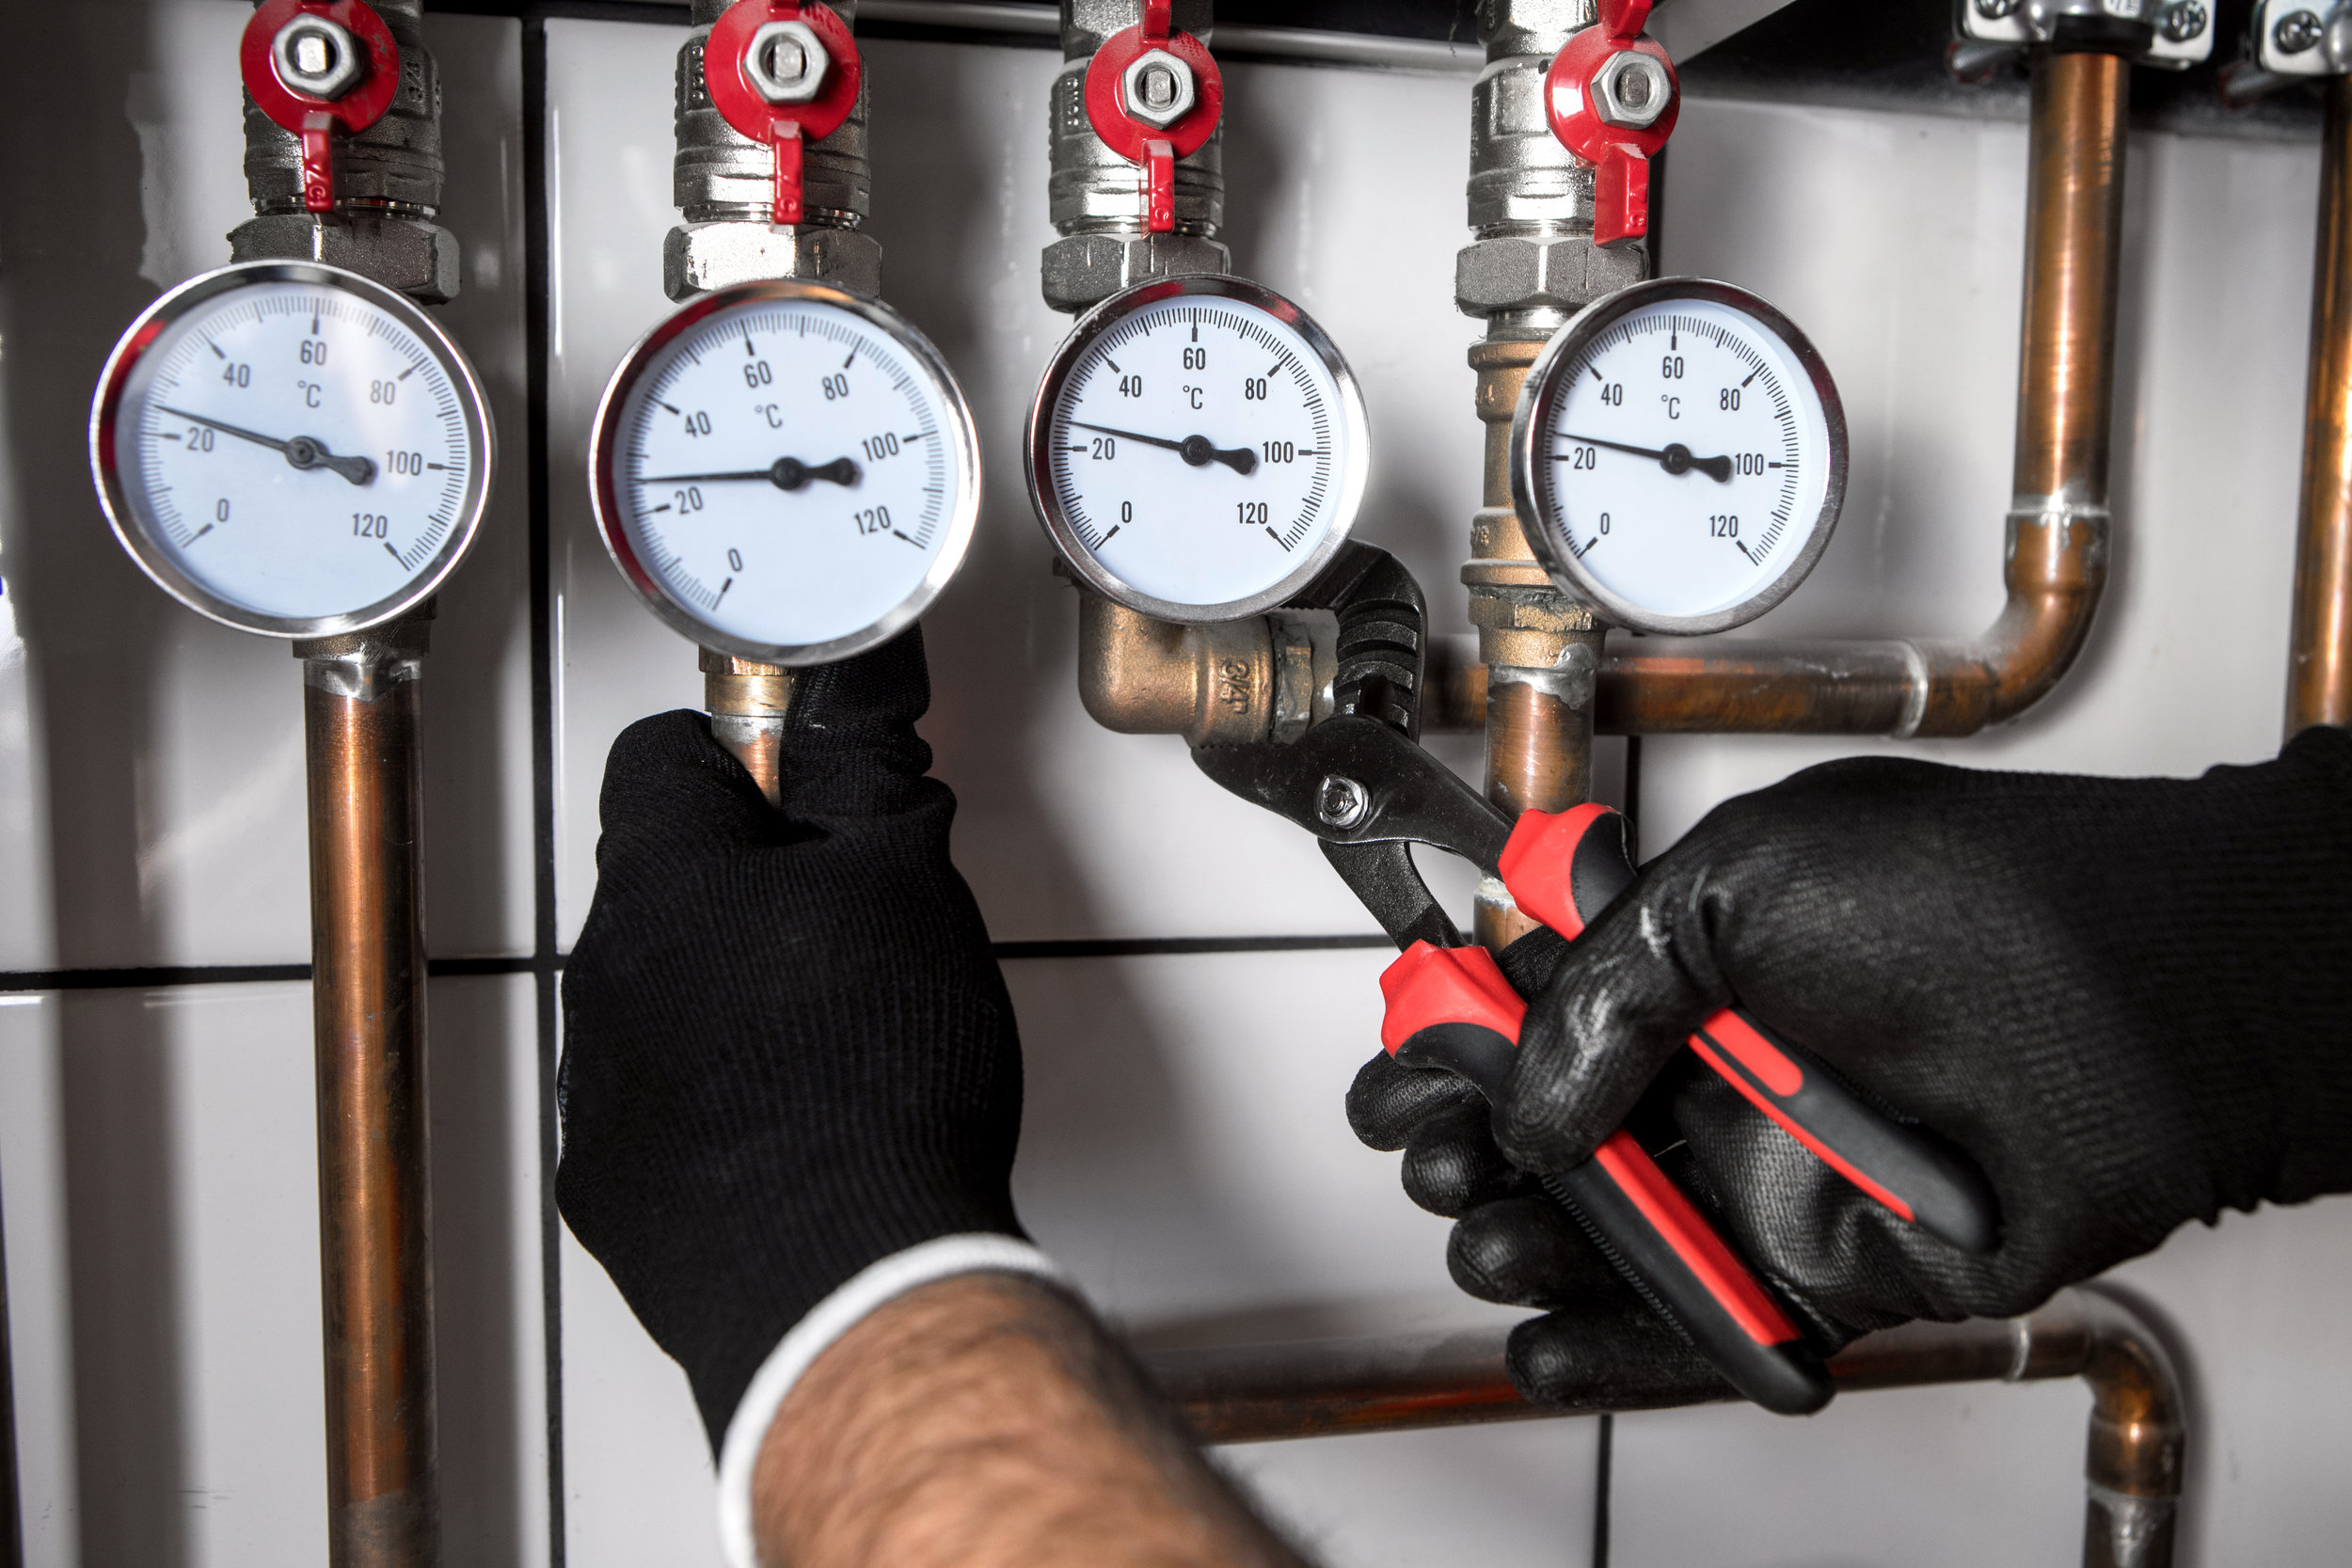 ALL PLUMBING & 24 HOUR EMERGENCY SERVICES - We are available for emergency 24hr on-call service. Or please call us to schedule an appointment; we will personally assist you to find a solution to your plumbing and heating problem.